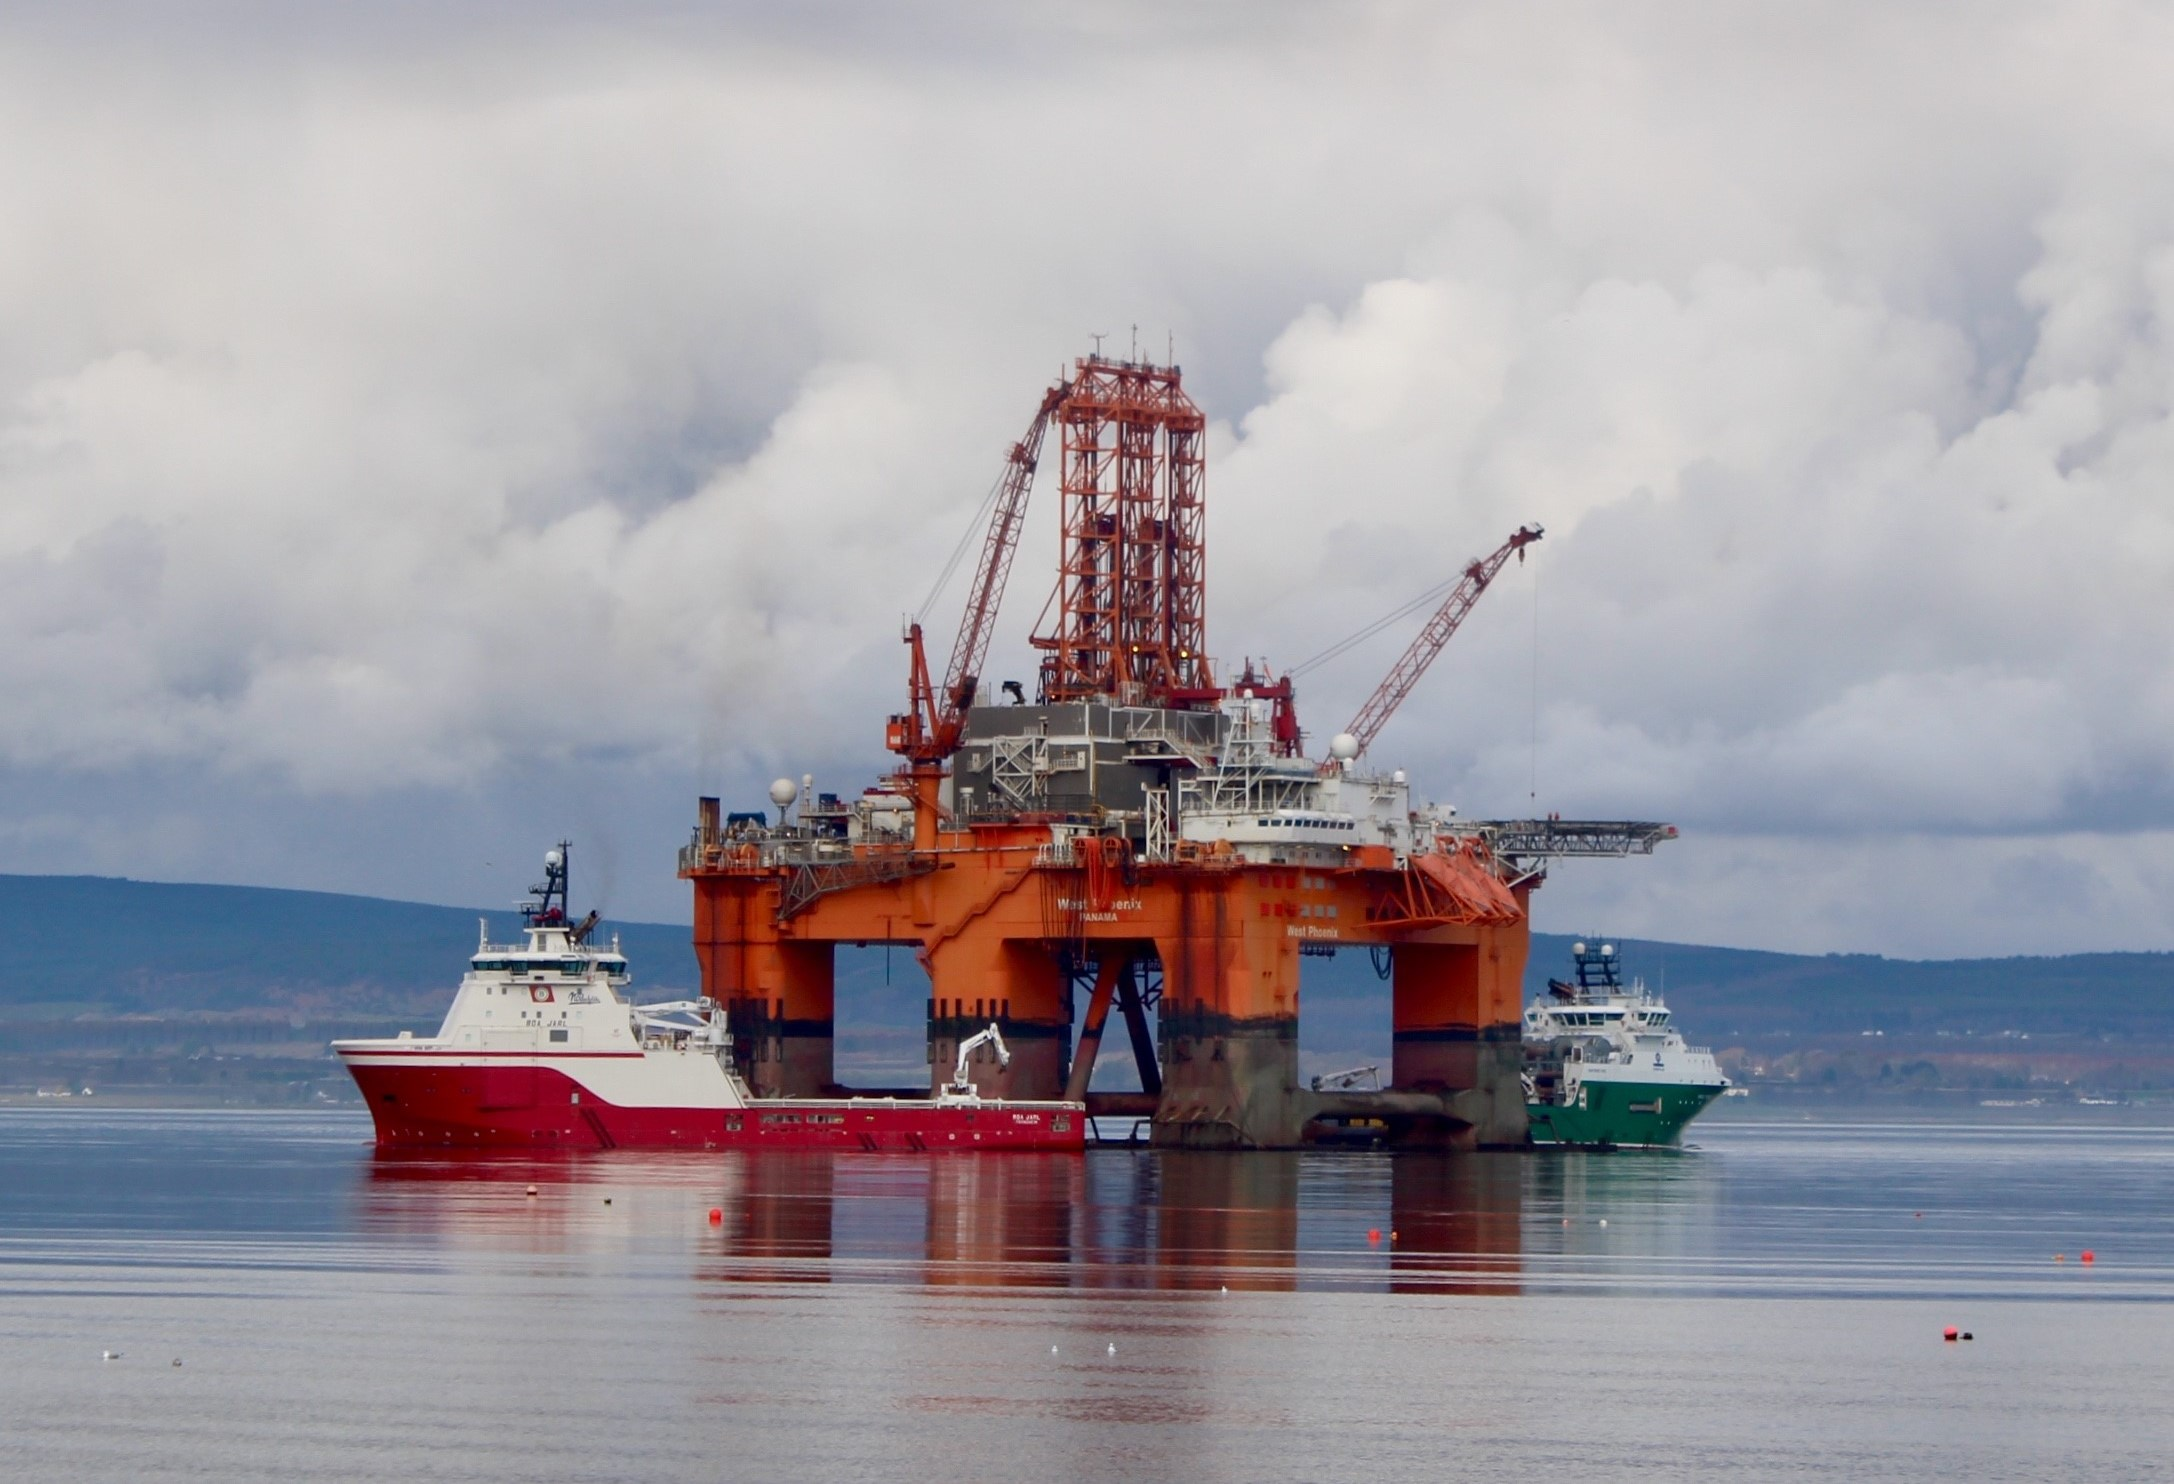 Lifjellet will be drilled by the West Phoenix rig